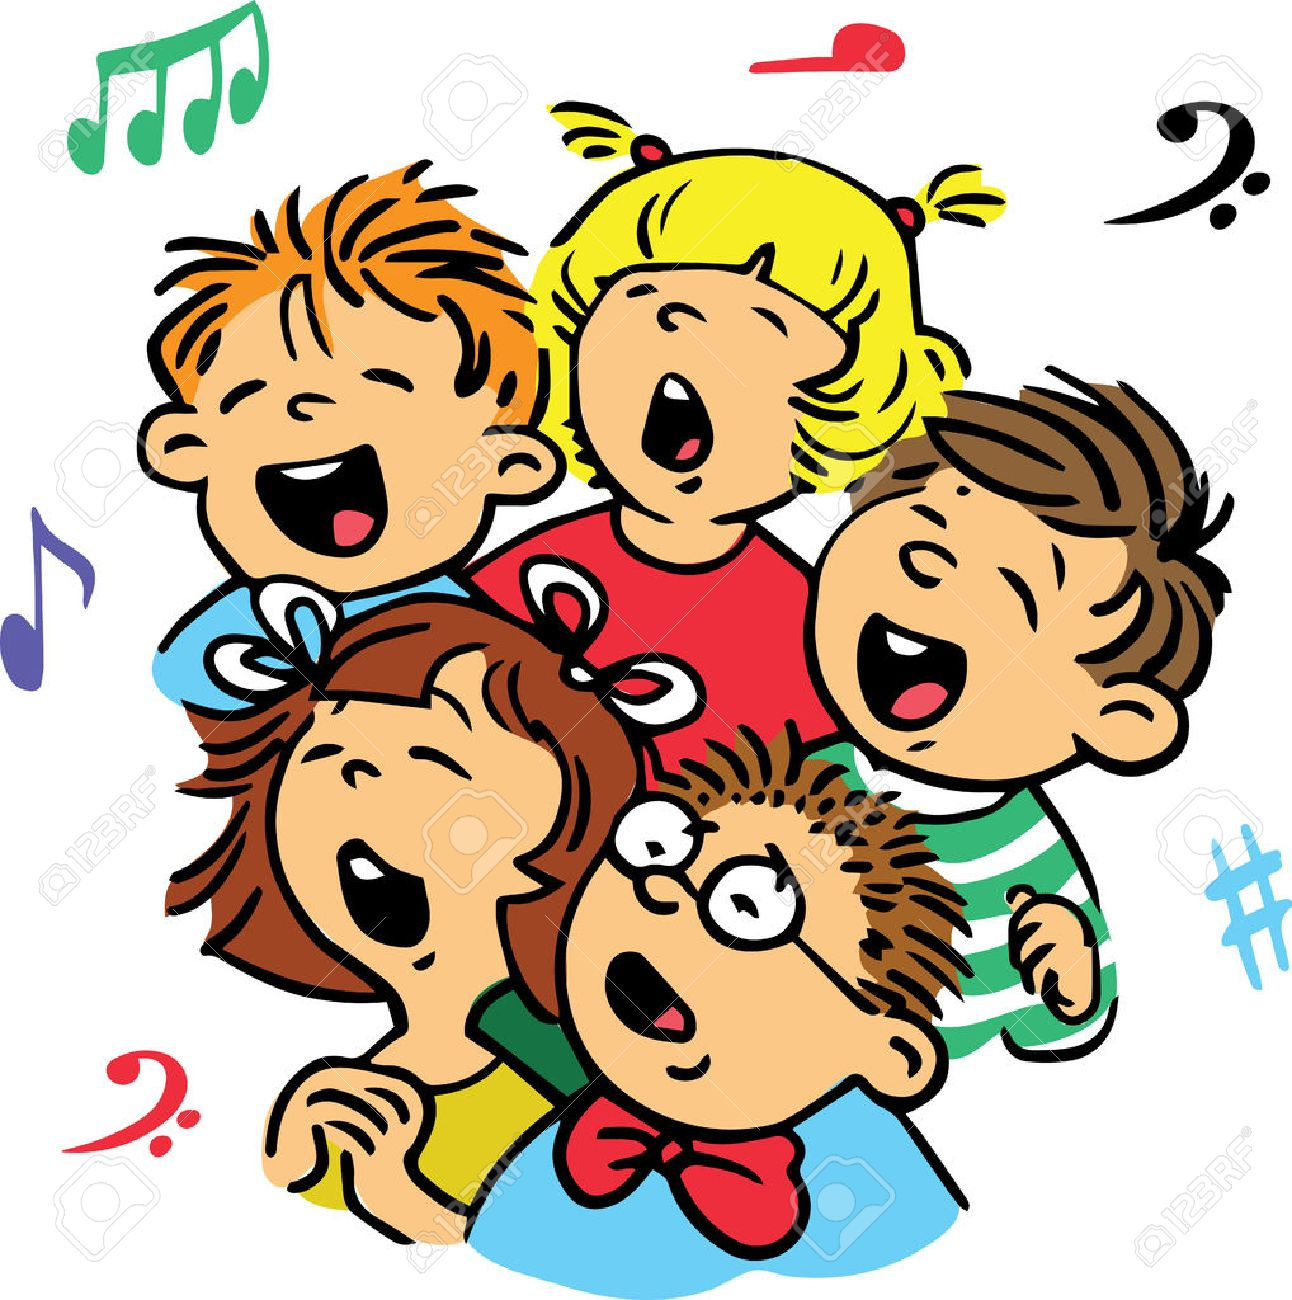 Hand drawn. Vector illustration. Group of children singing in unison a song. - 52214486